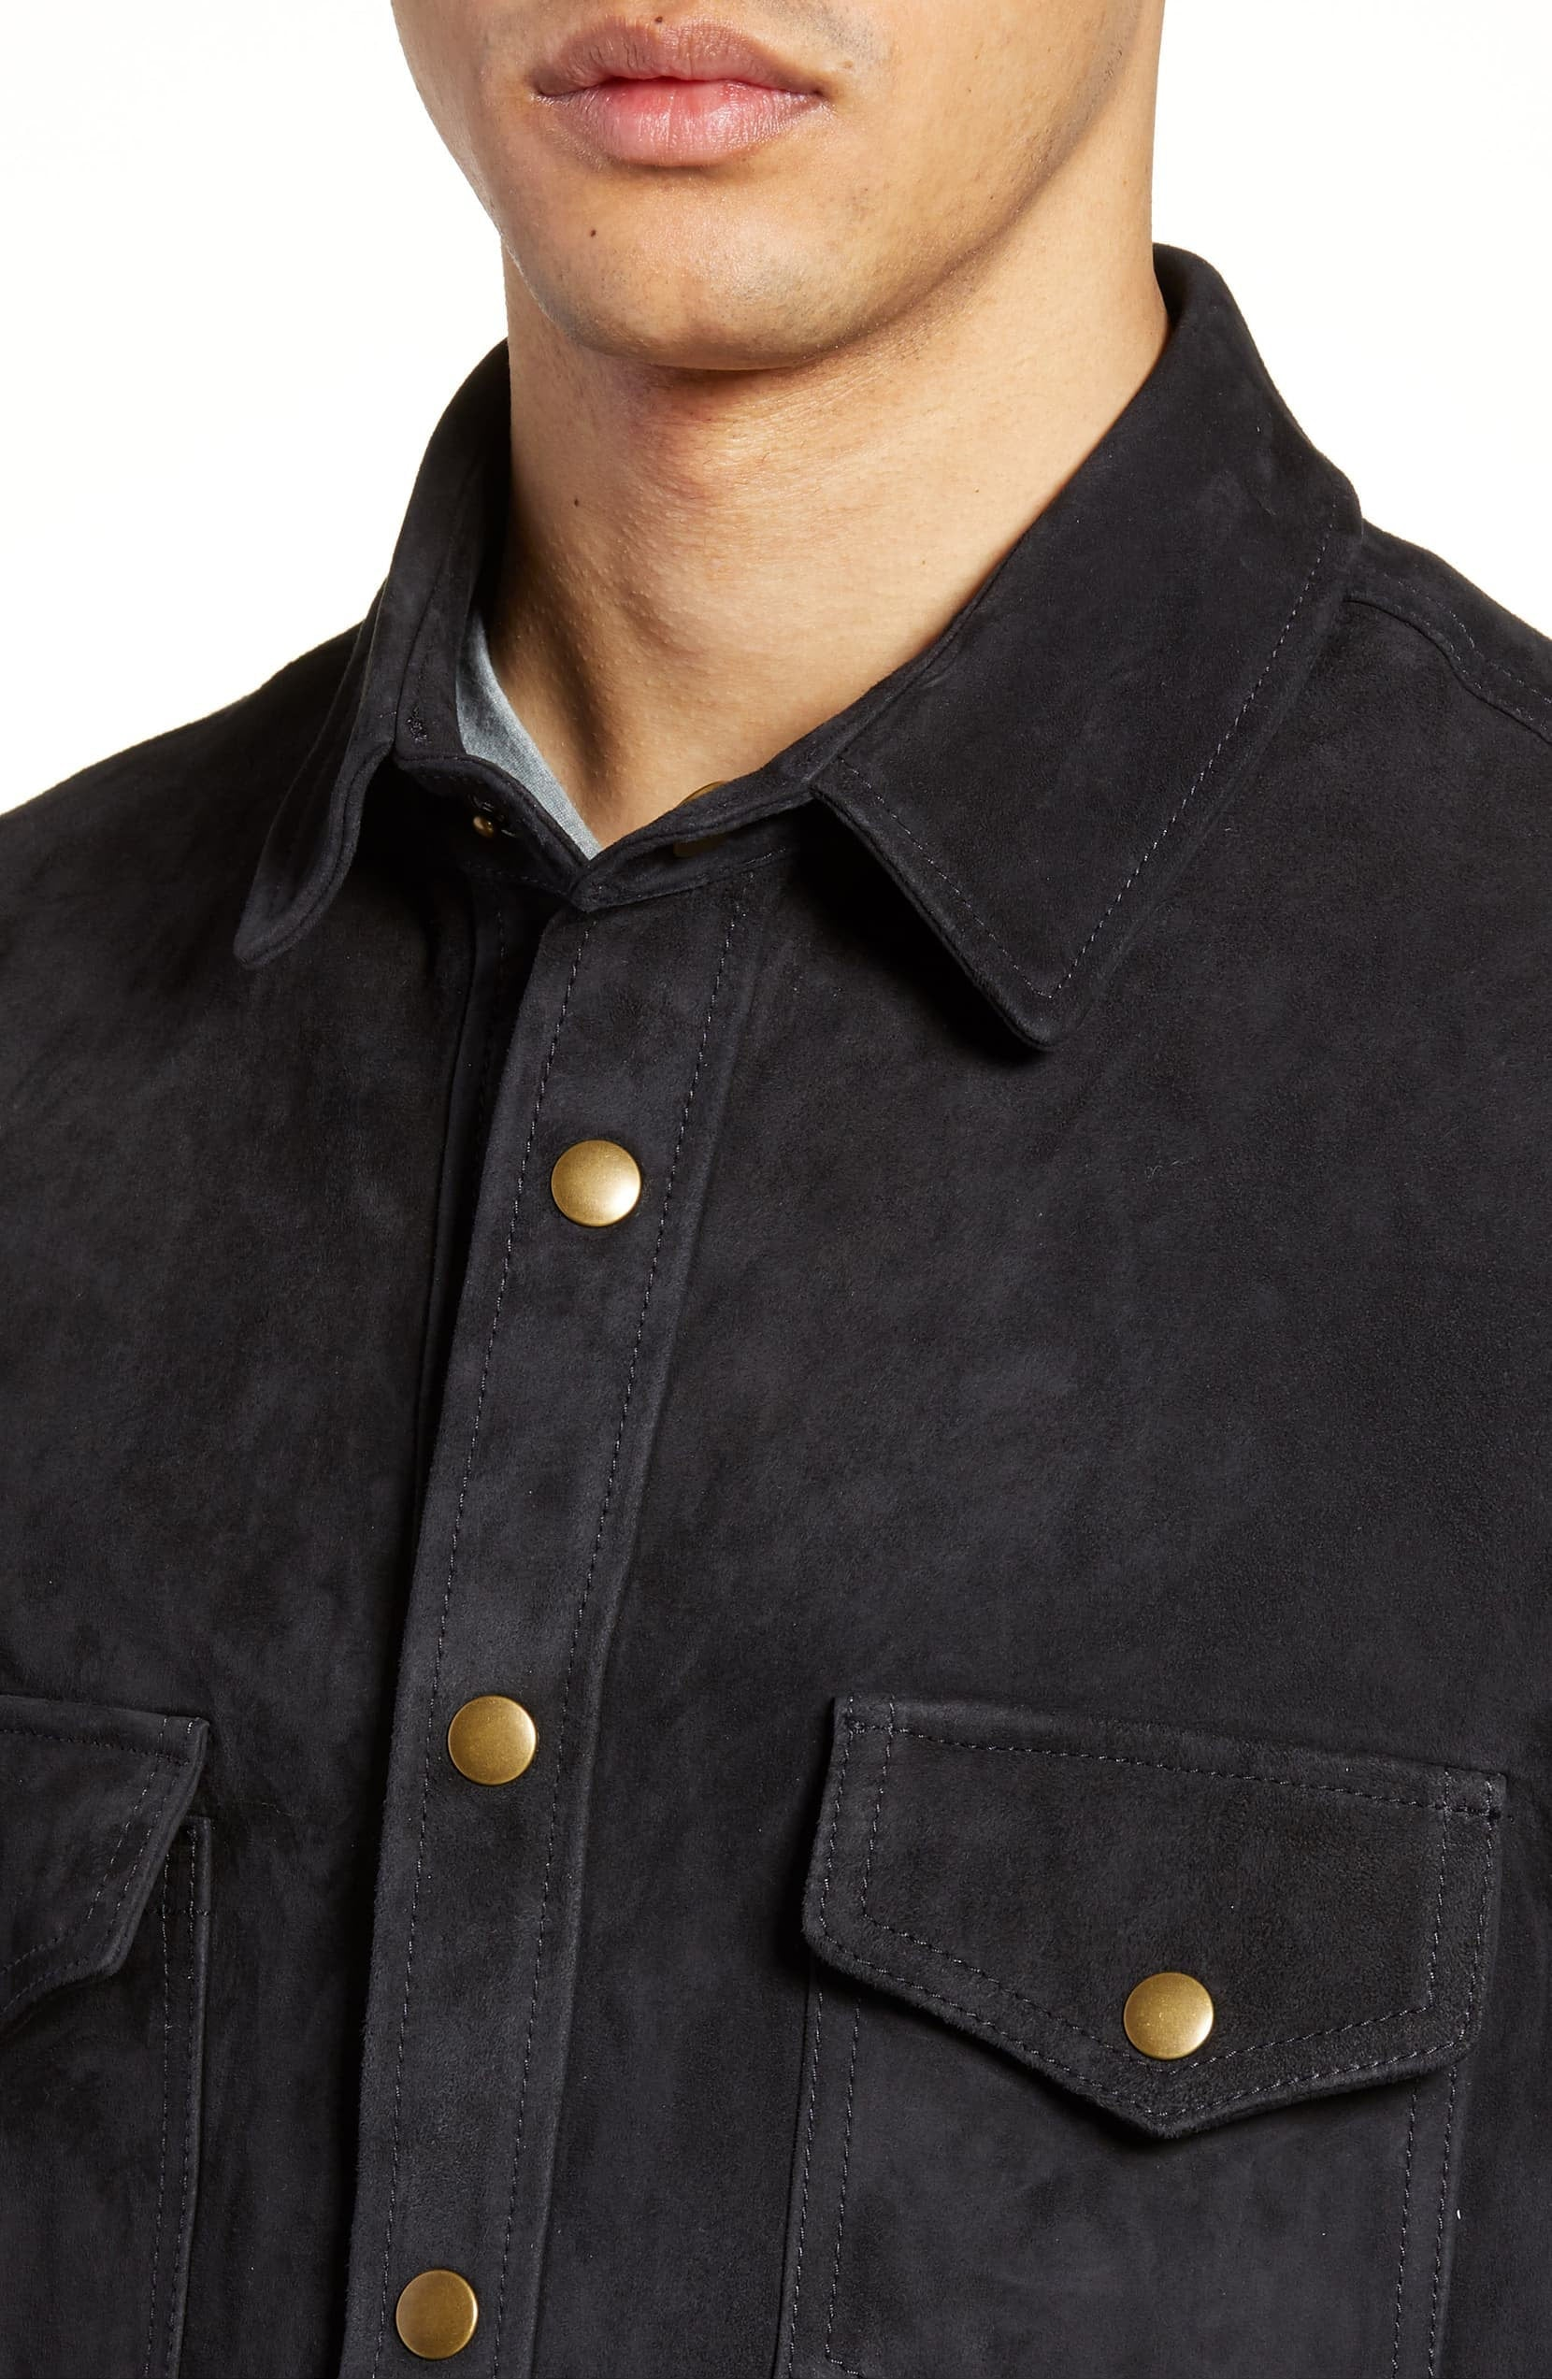 Designer genuine  leather  Handmade Man Suede Leather shirt: Guaranteed delivery within 4 working  days after dispatch